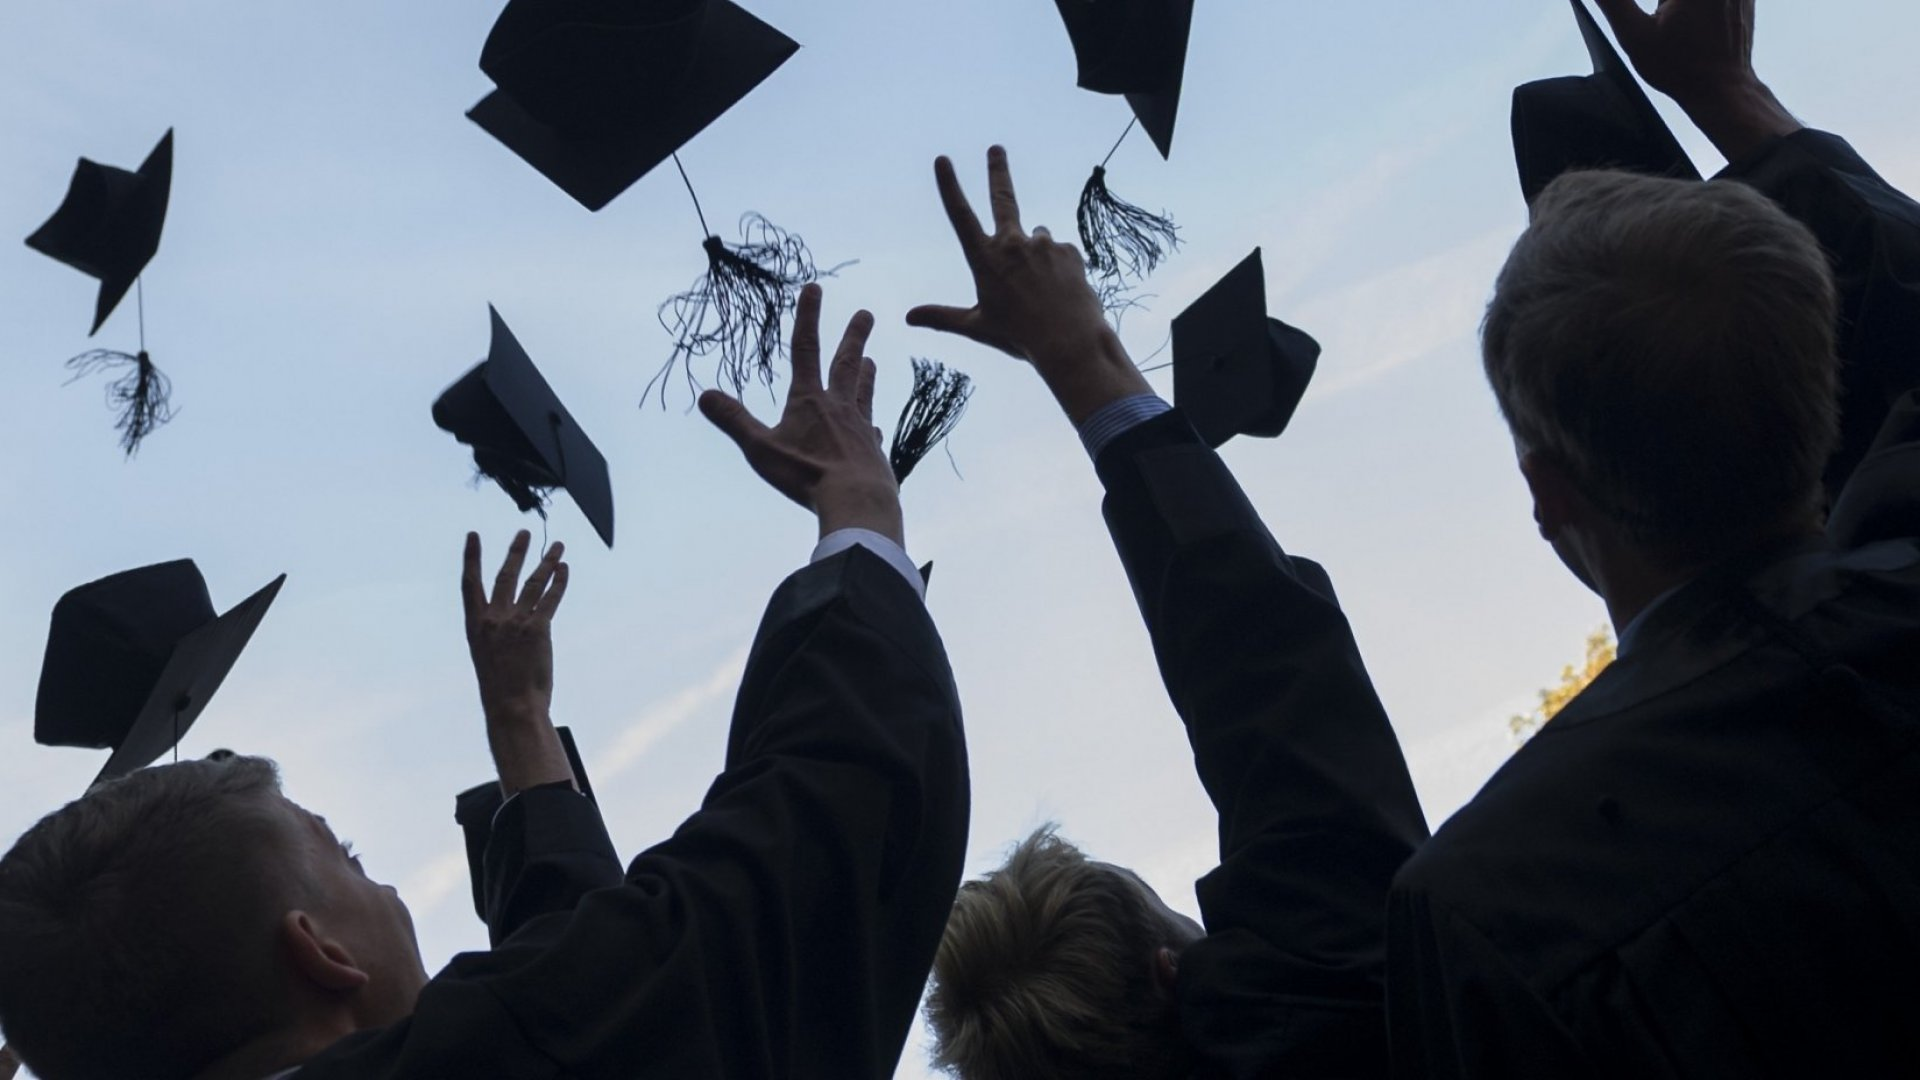 These MBA Programs Get Their Graduates the Best Jobs and Highest Salaries